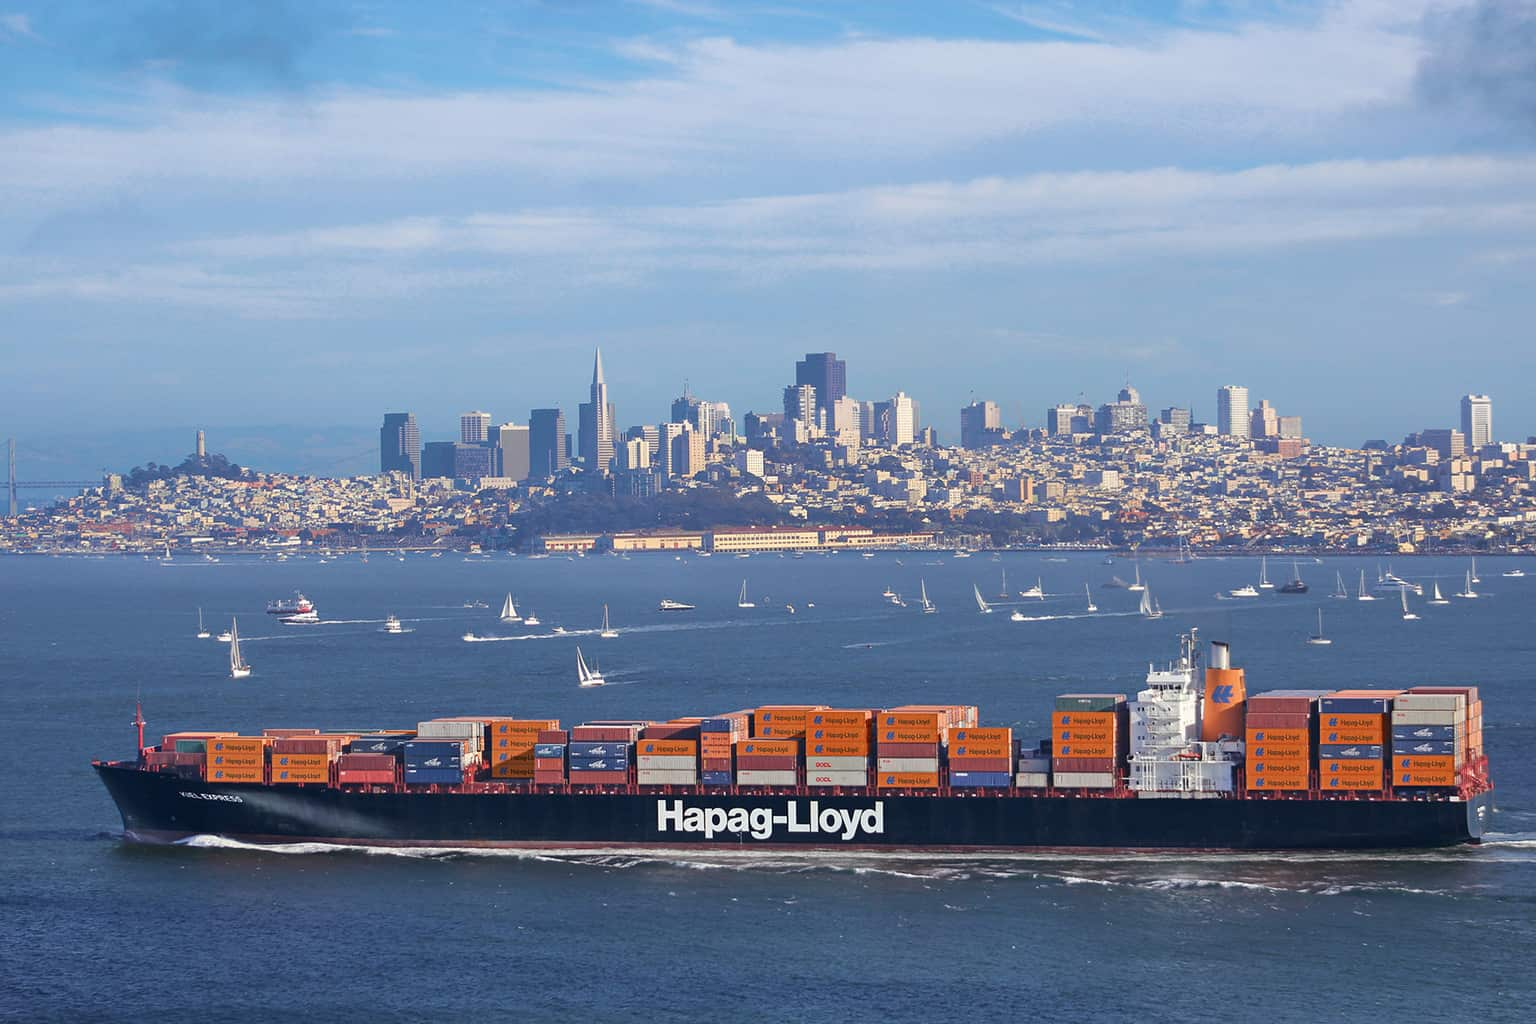 Hapag-Lloyd doubles operating result in first nine months